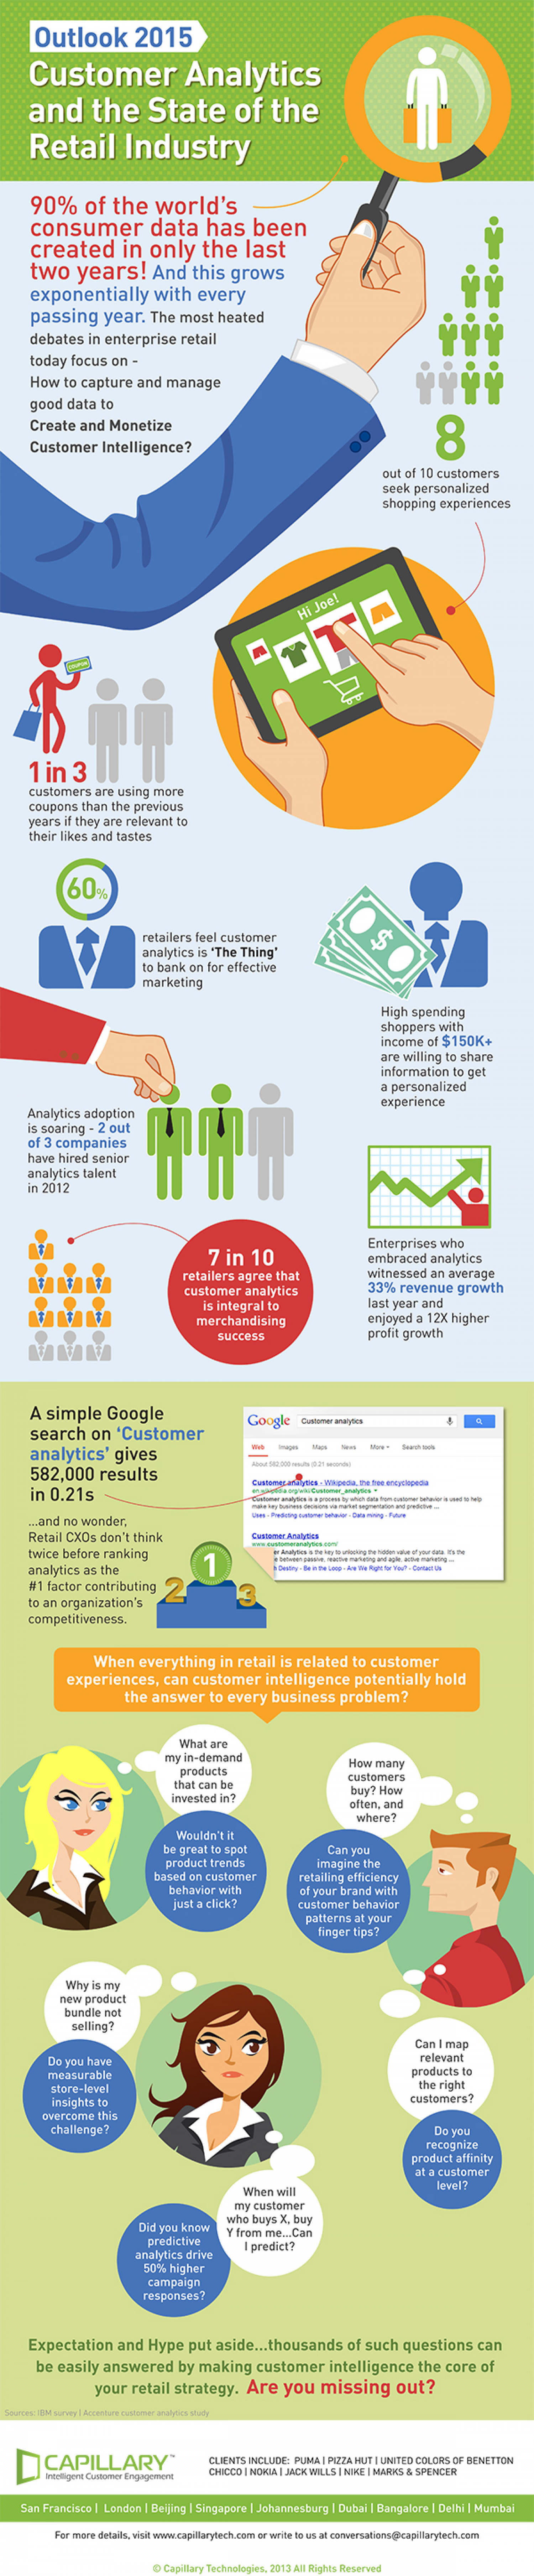 Customer Analytics and the State of the Retail Industry Infographic